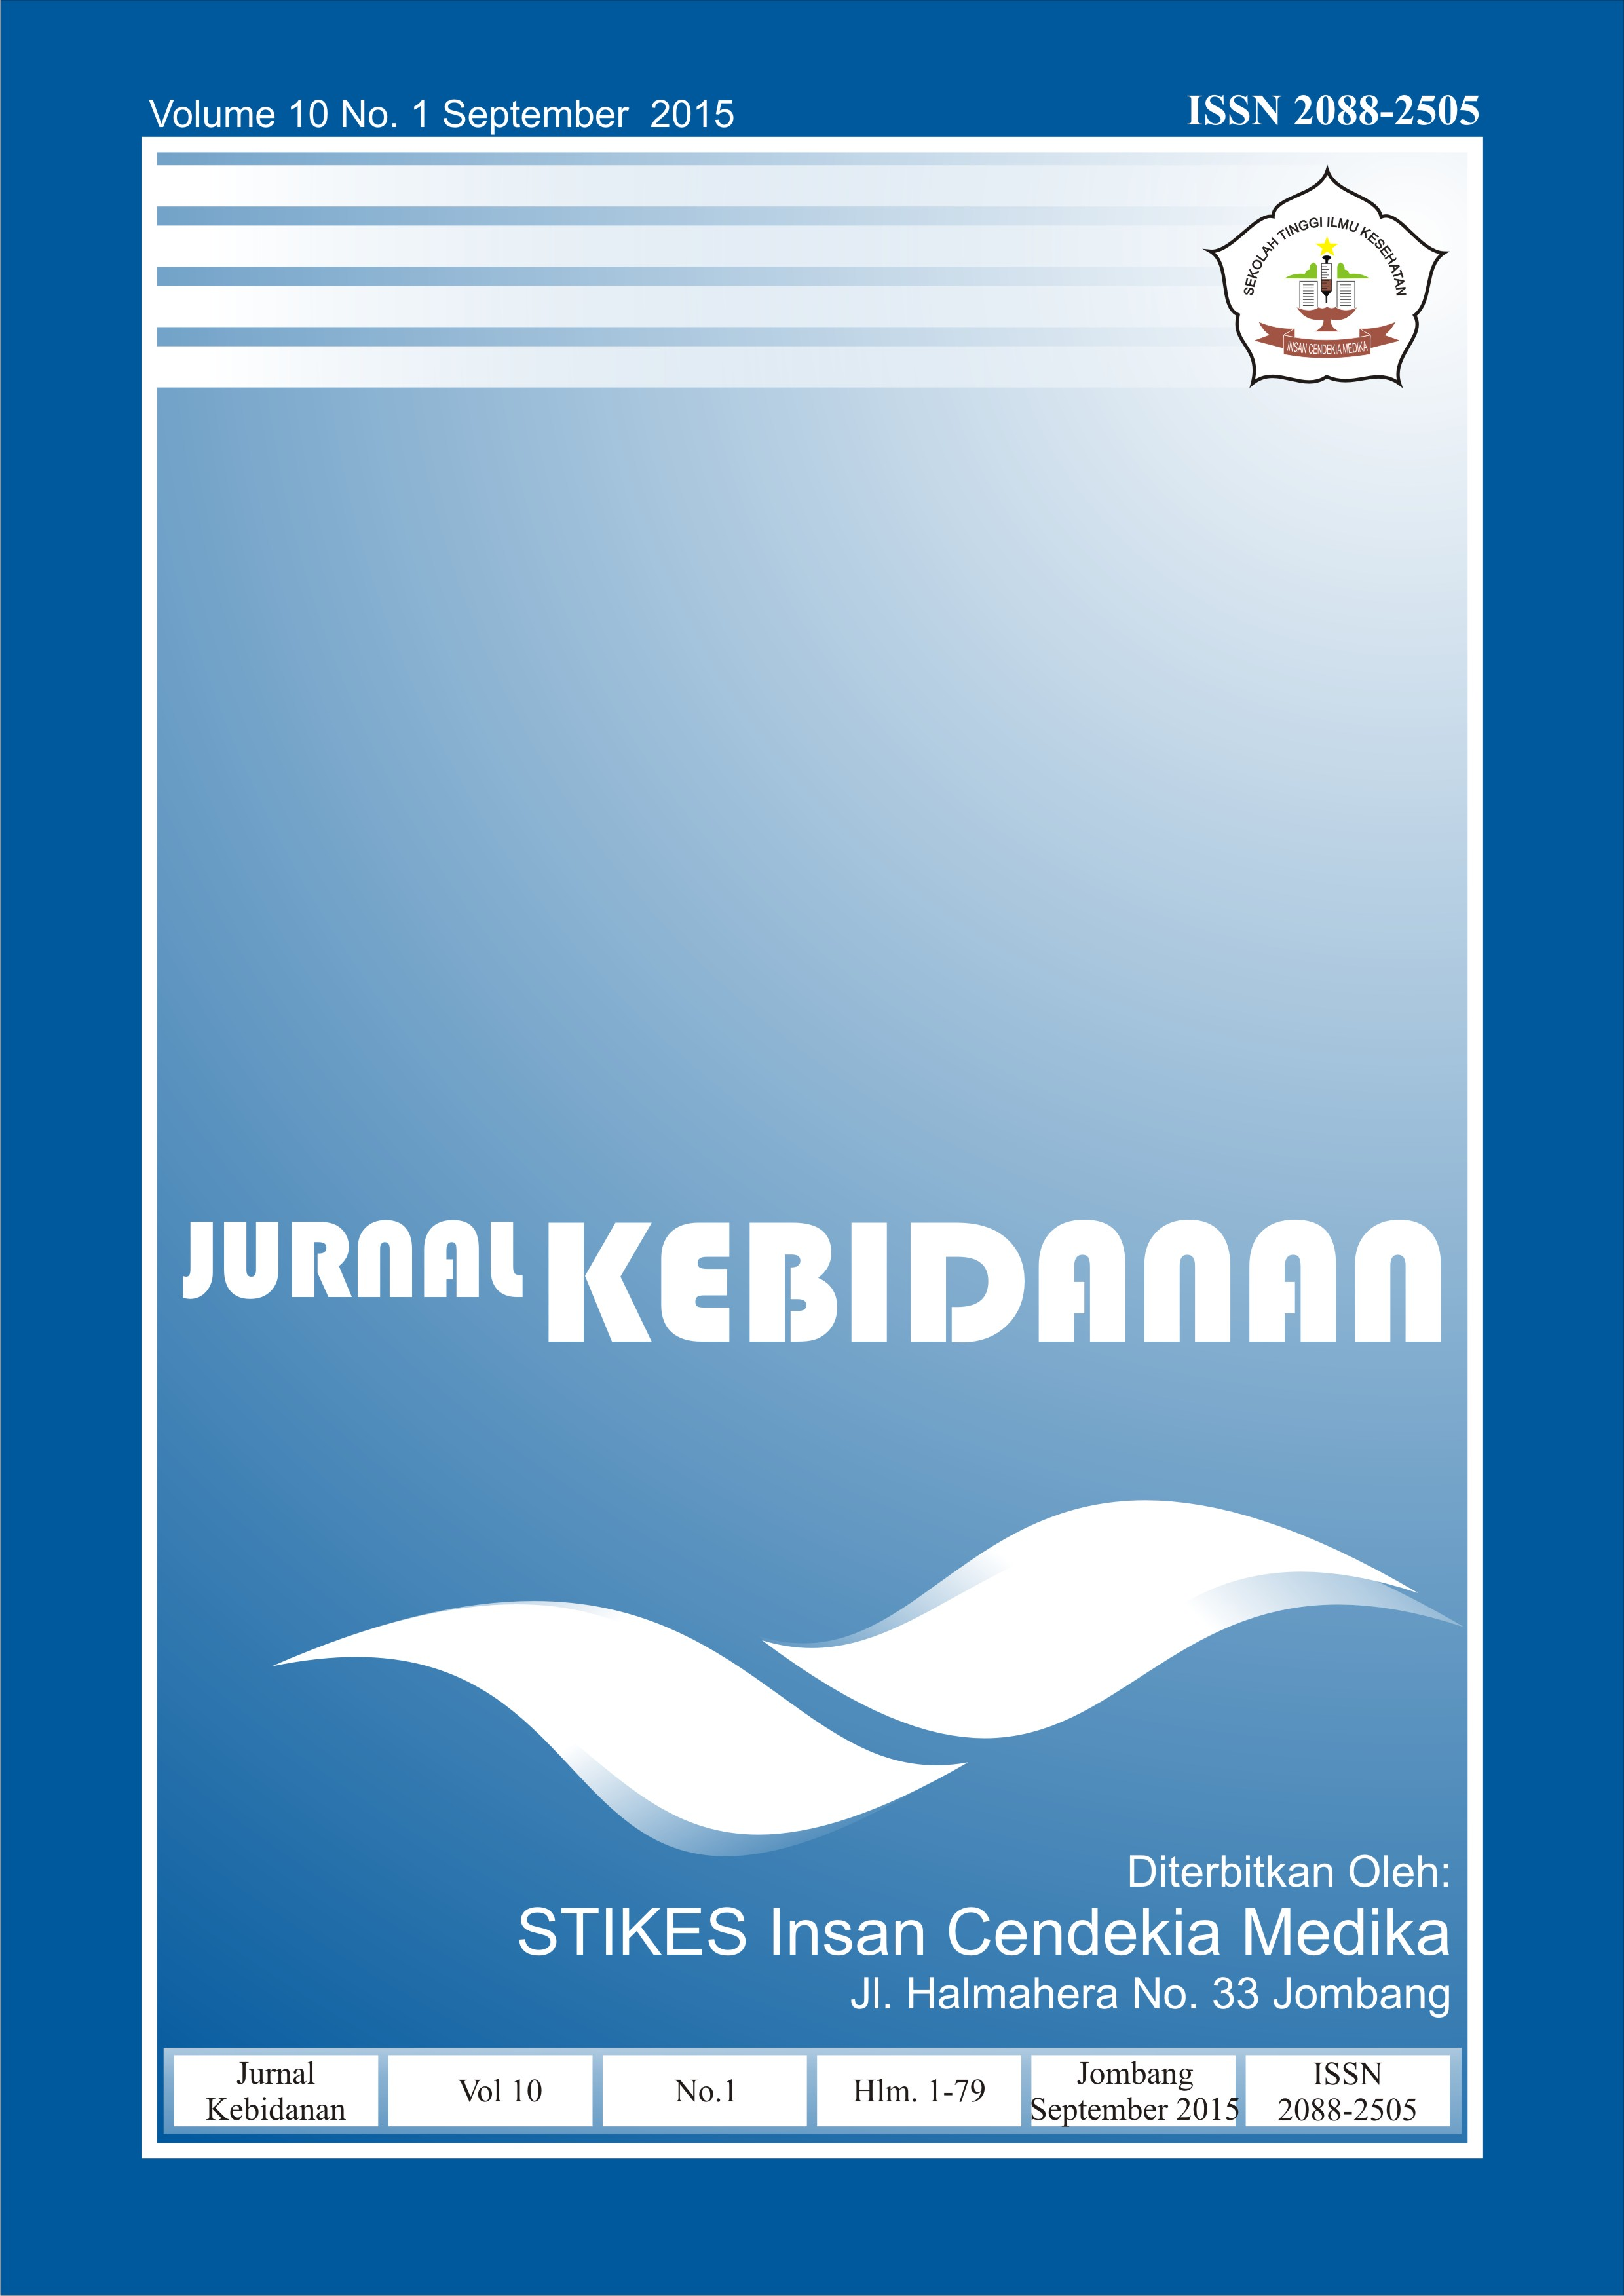 Ilmu Kebidanan Sarwono Prawirohardjo Pdf Download cover_issue_23_en_US